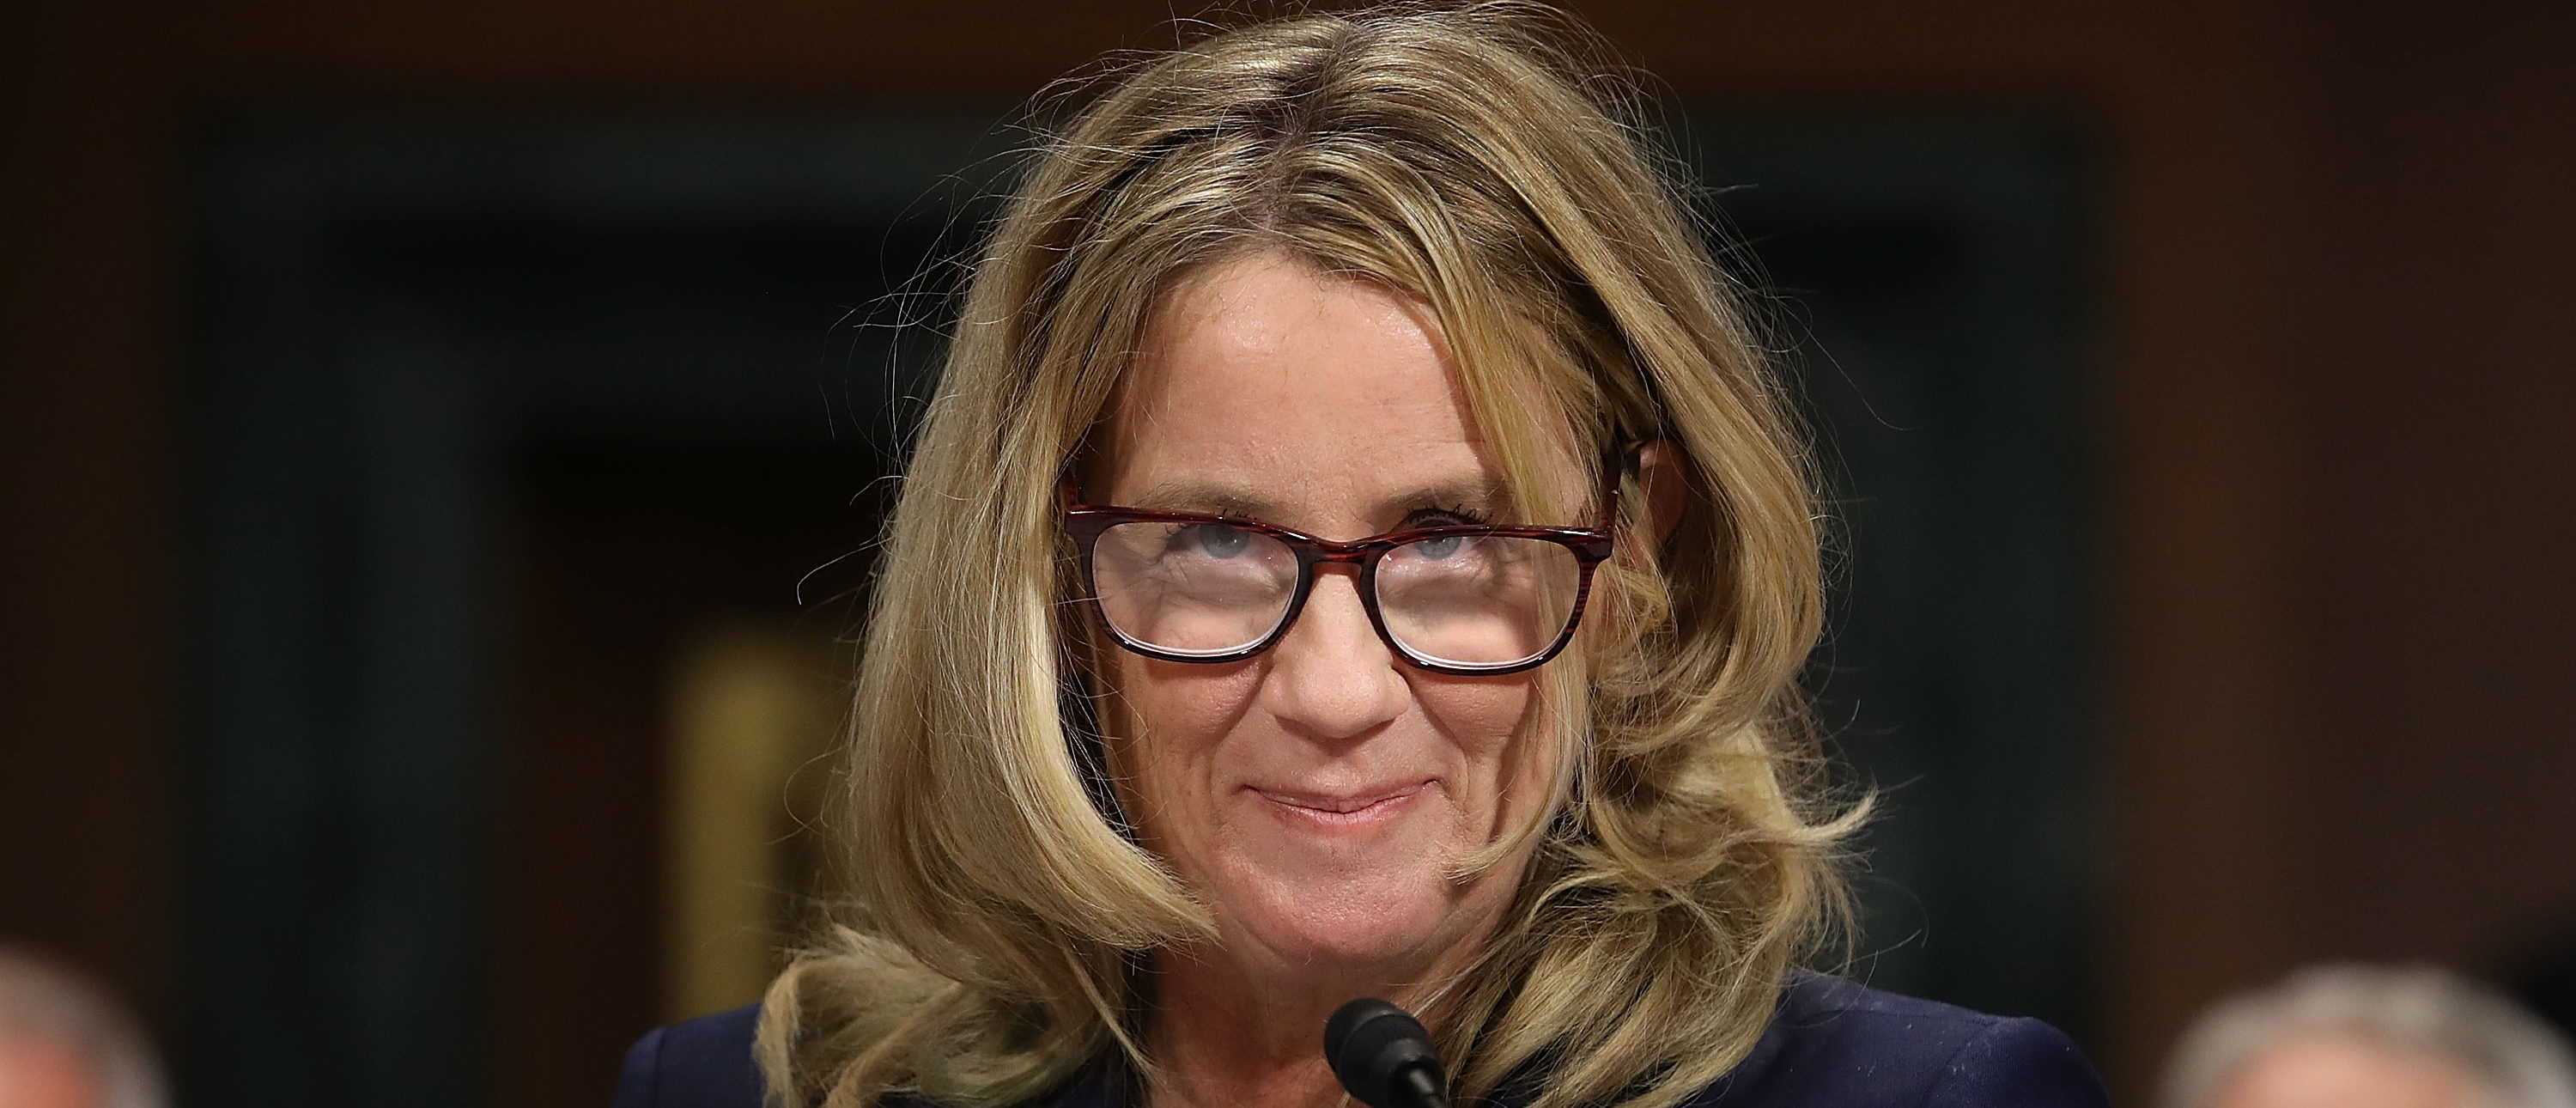 Christine Blasey Ford testifies before the Senate Judiciary Committee on September 27, 2018. (Win McNamee/Getty Images)